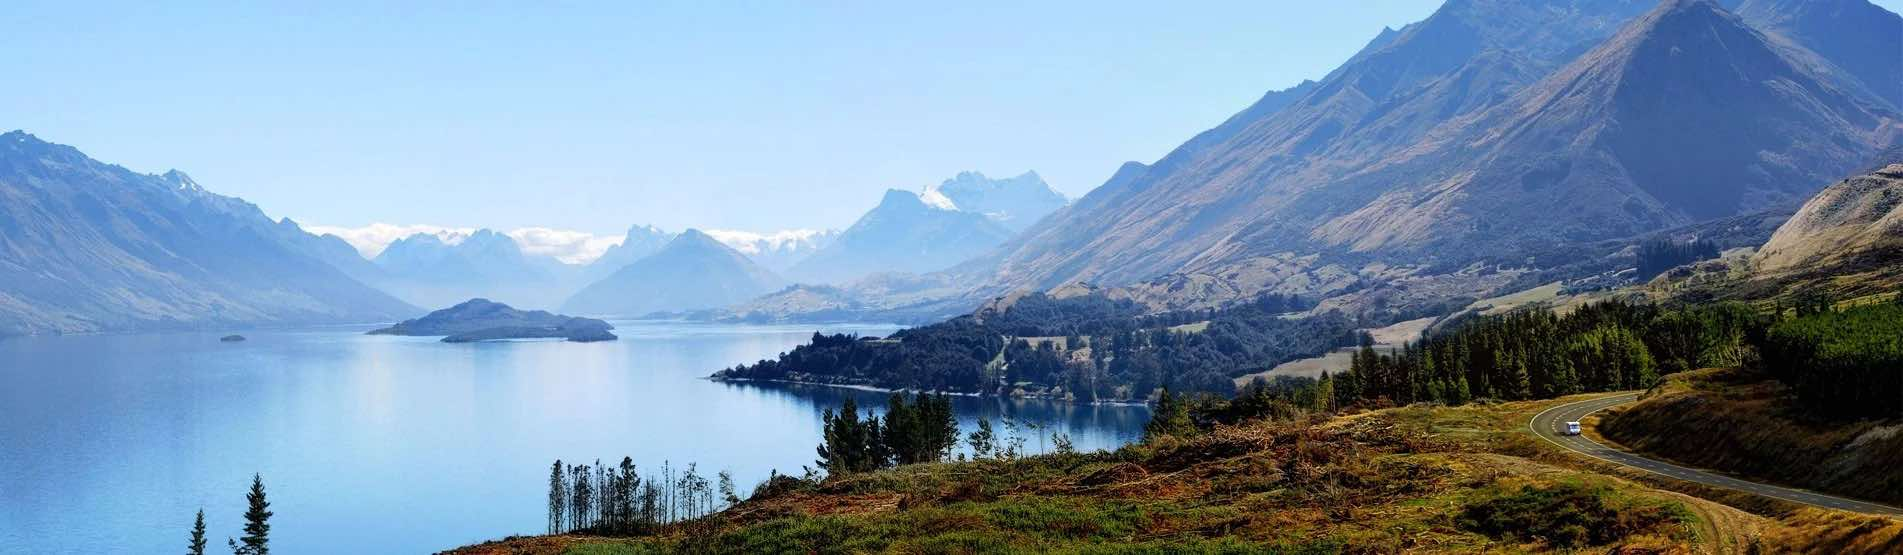 Explore with Wilderness Motorhomes